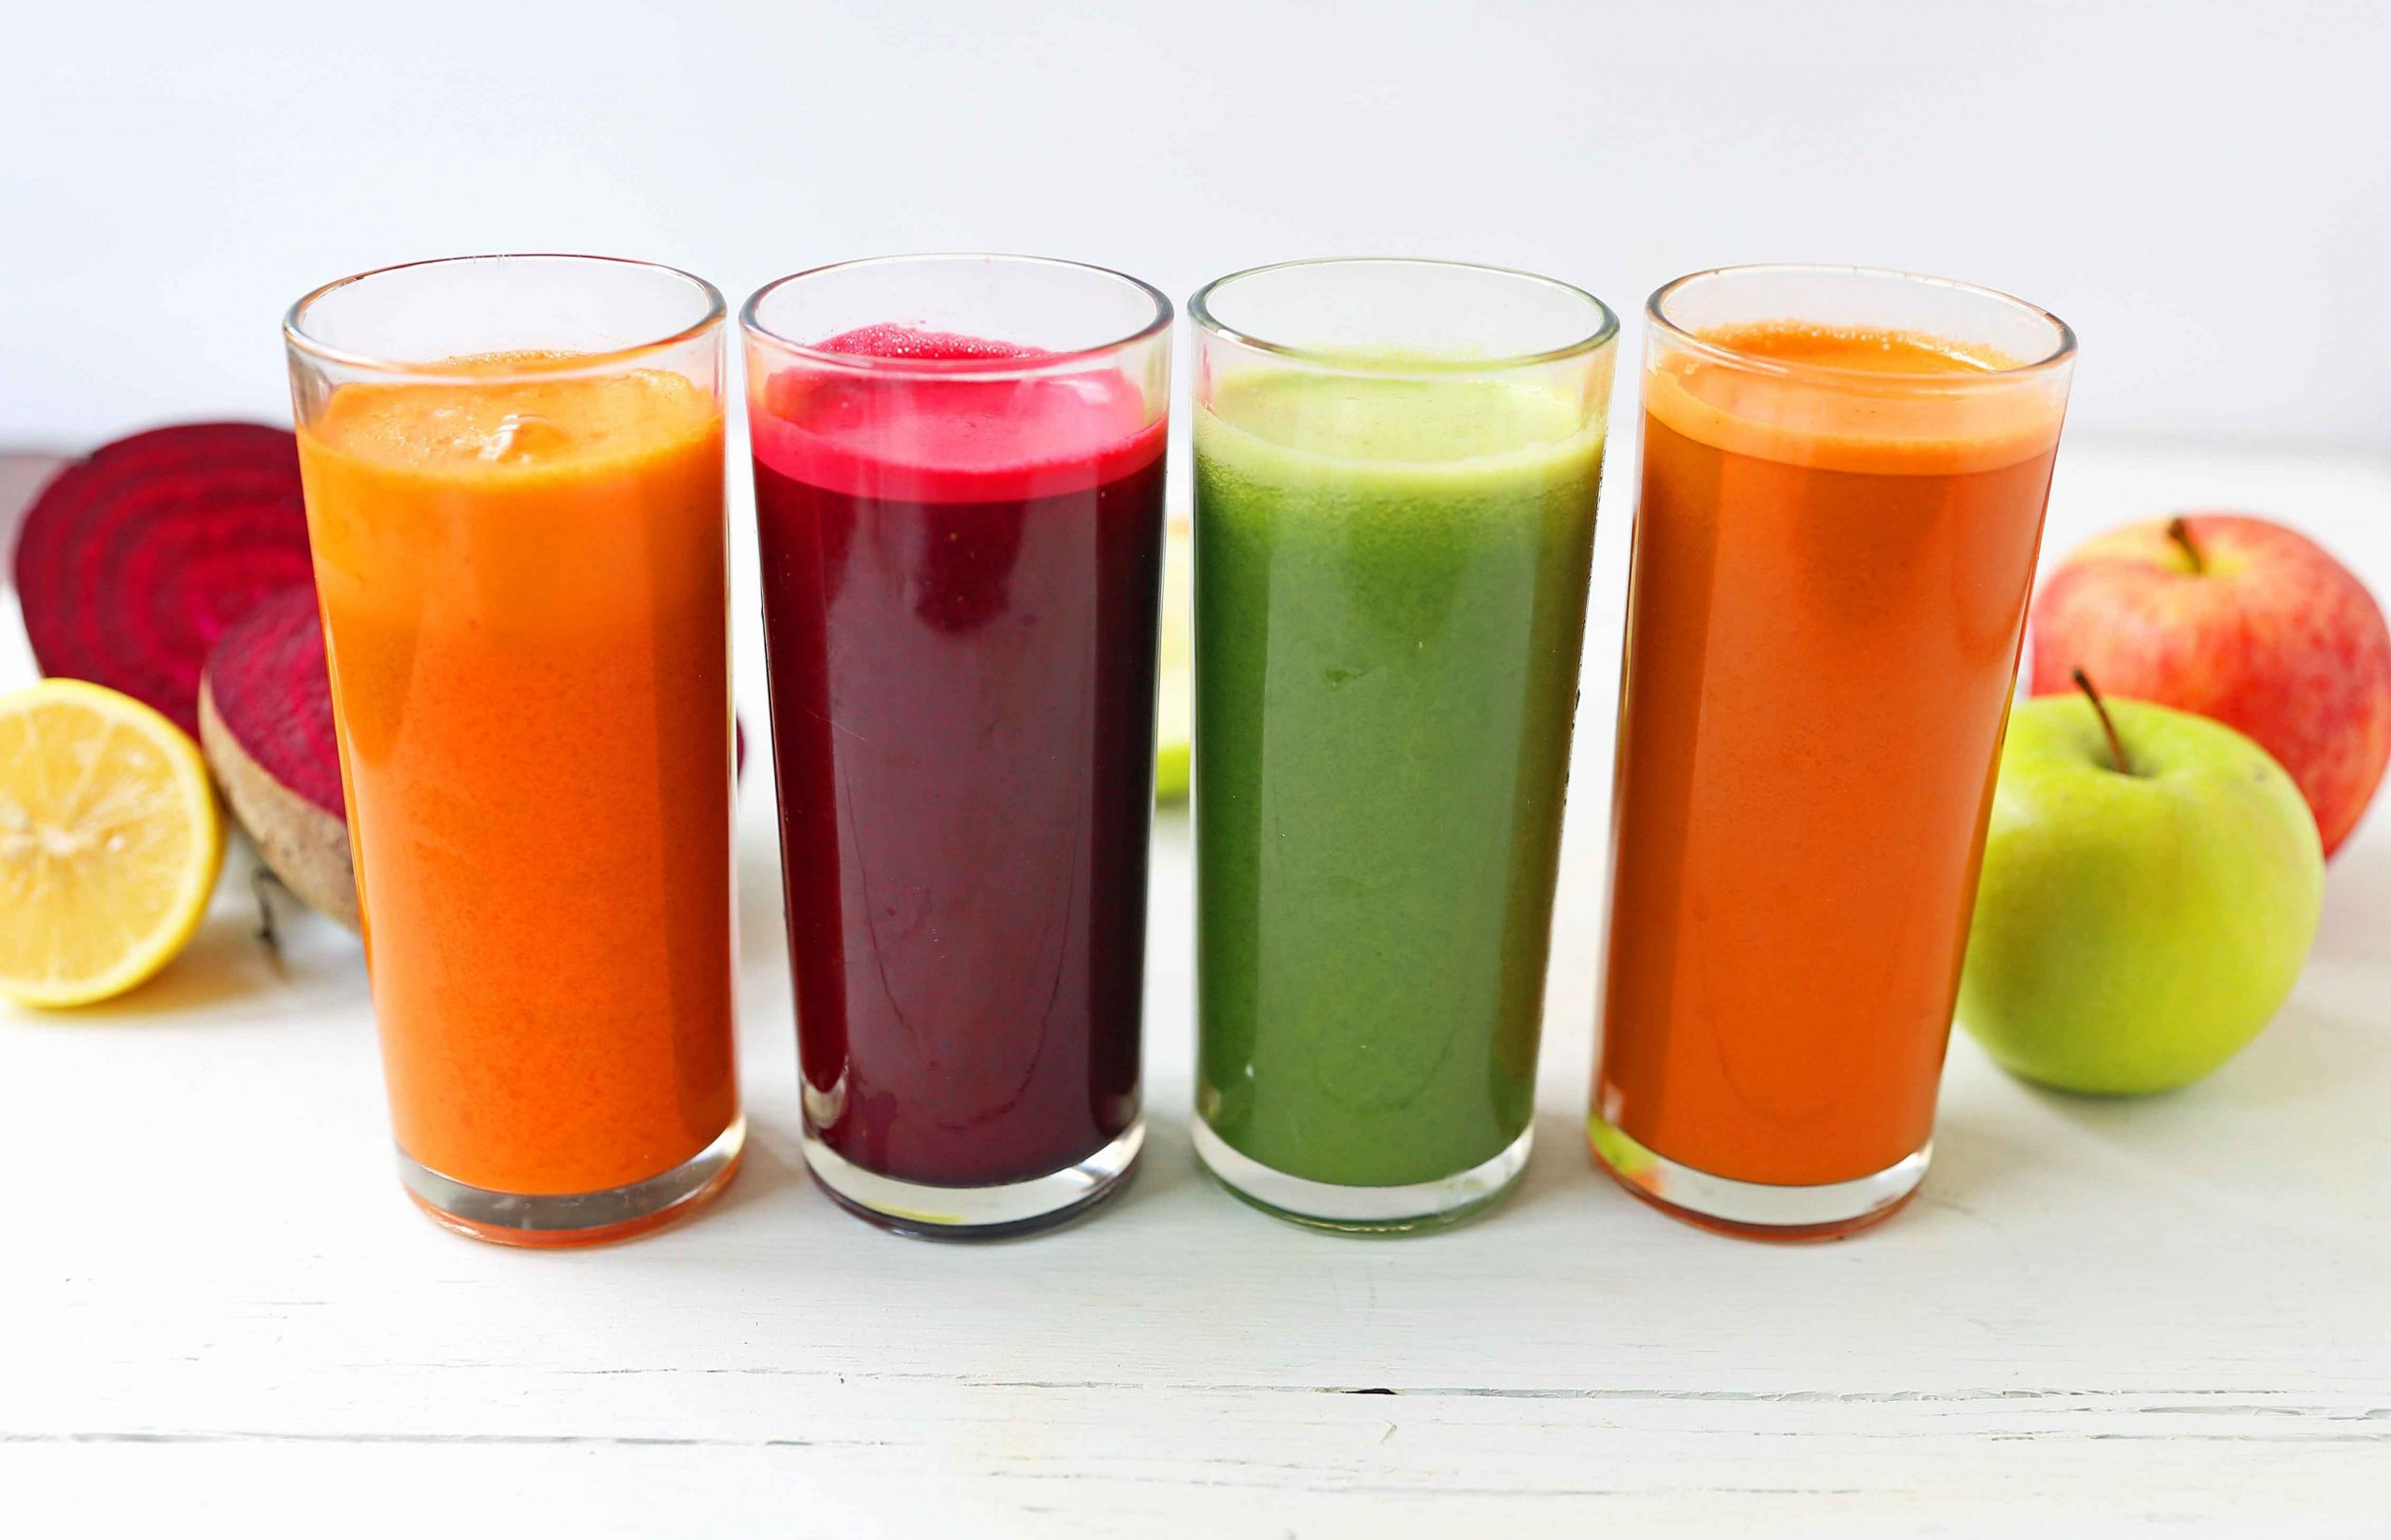 Healthy Juice Cleanse Recipes - Breakfast Juice Recipes